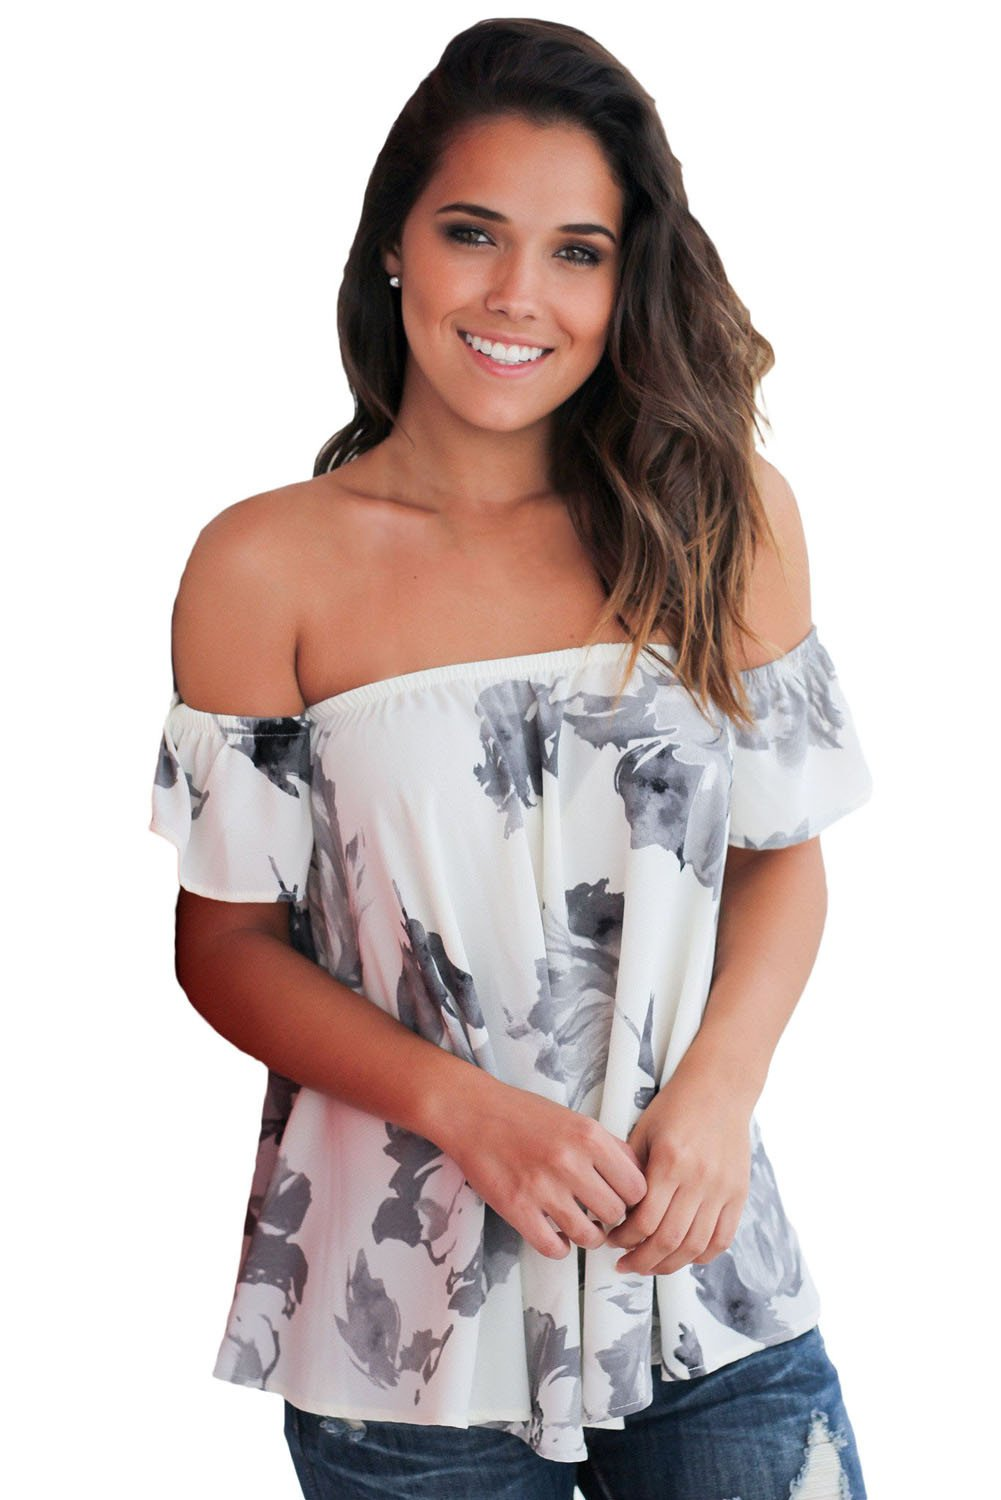 Fashion Off Shoulder White Inky Floral Blouse - Winter Haven Co